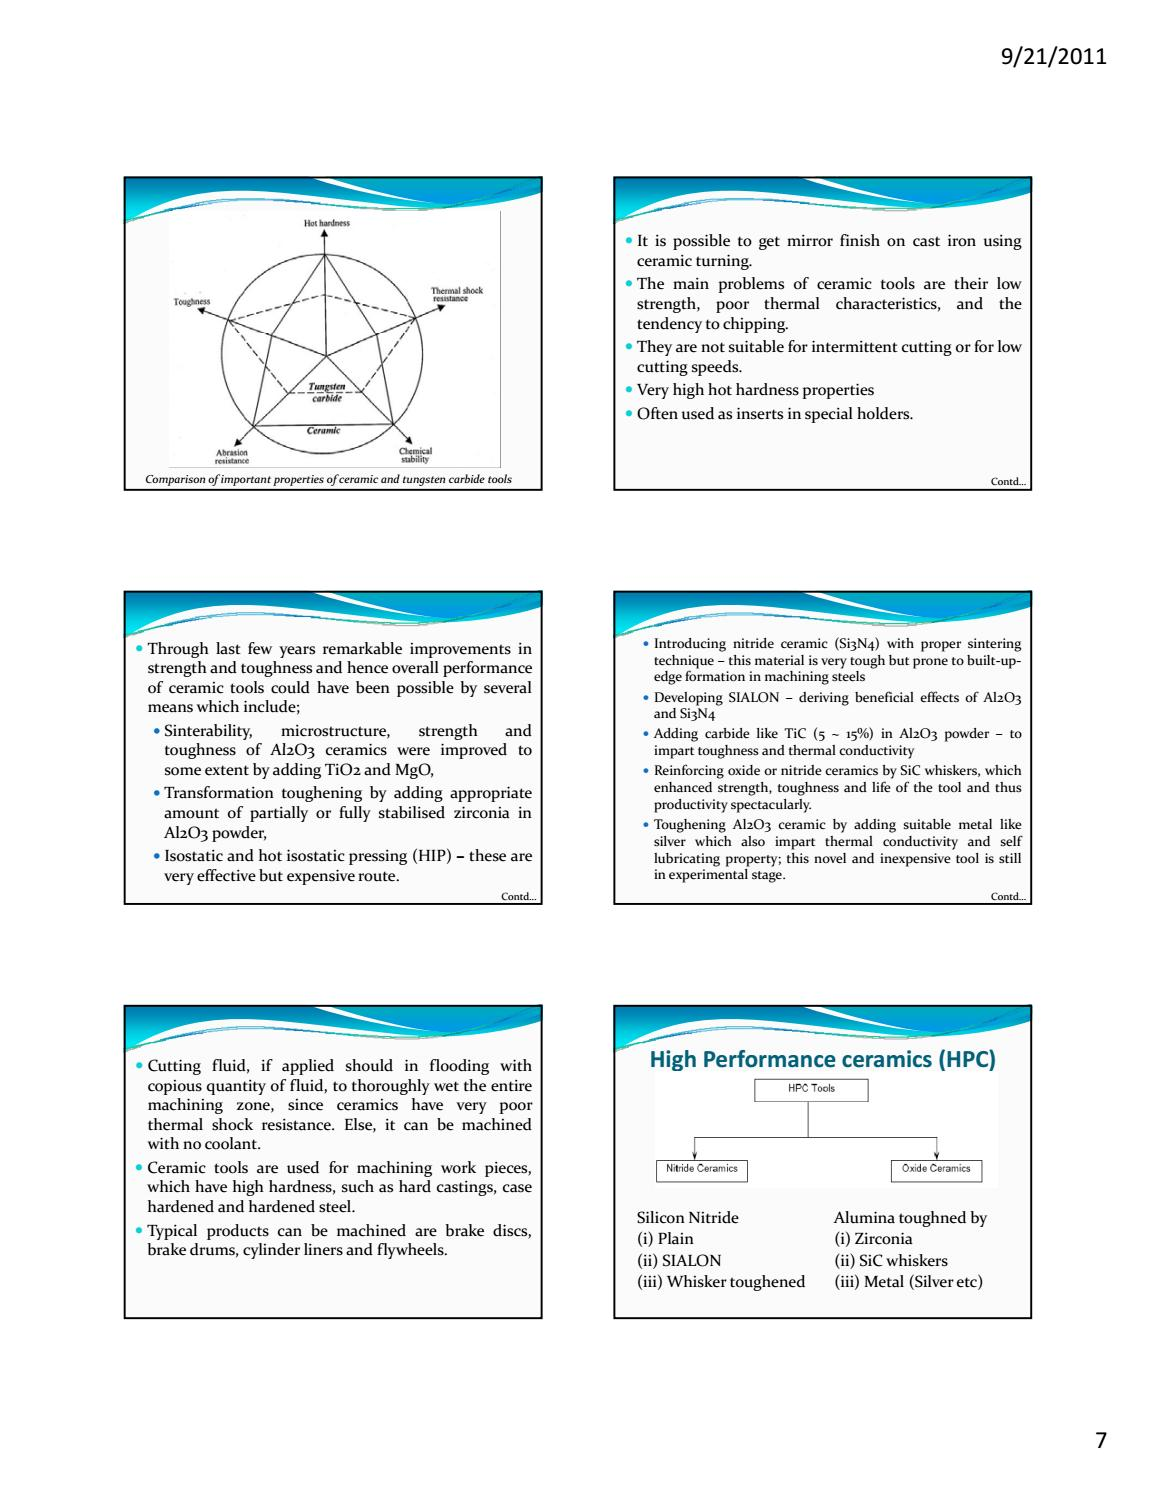 7 8 cutting tool materials complete ppt by S Dharmaraj - issuu